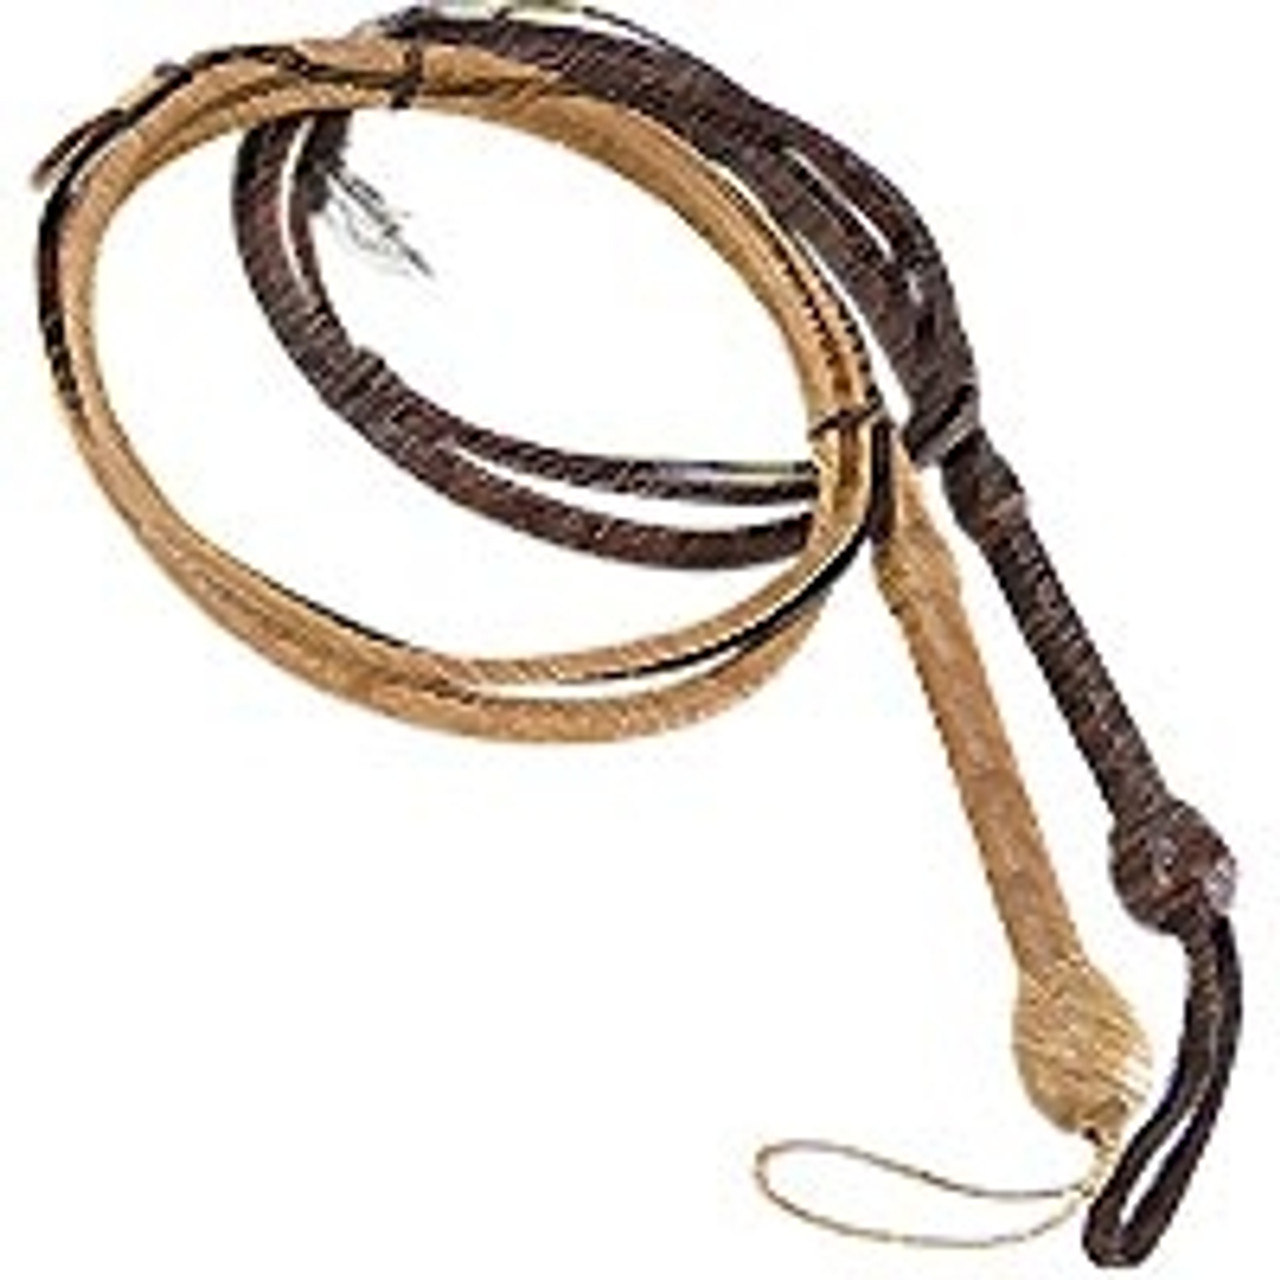 WS Indiana Jones Bull Whip